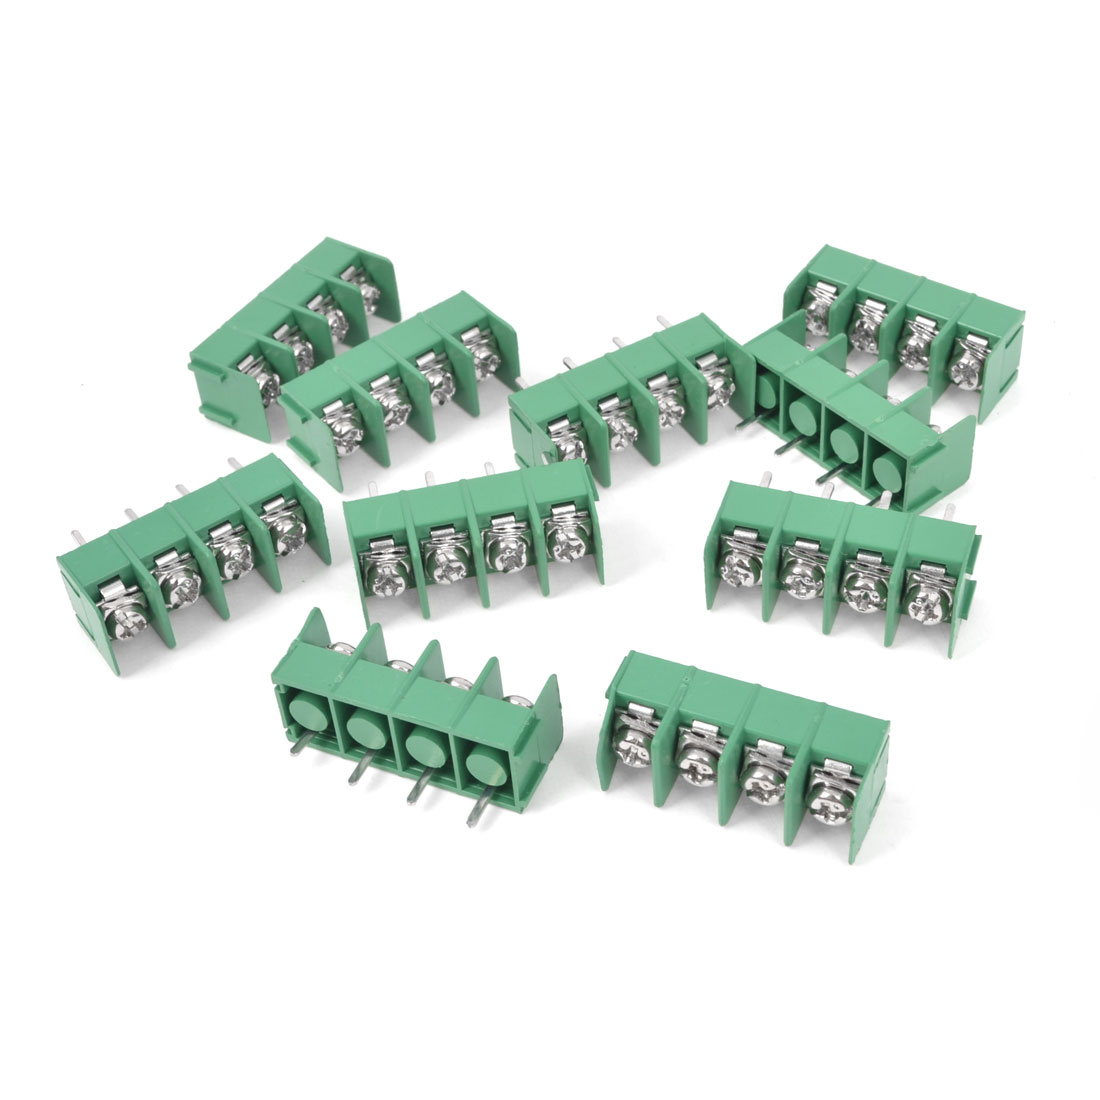 10Pcs 300V 20A 4P Pins PCB Screw Terminal Block Connector 7.62mm Pitch Green